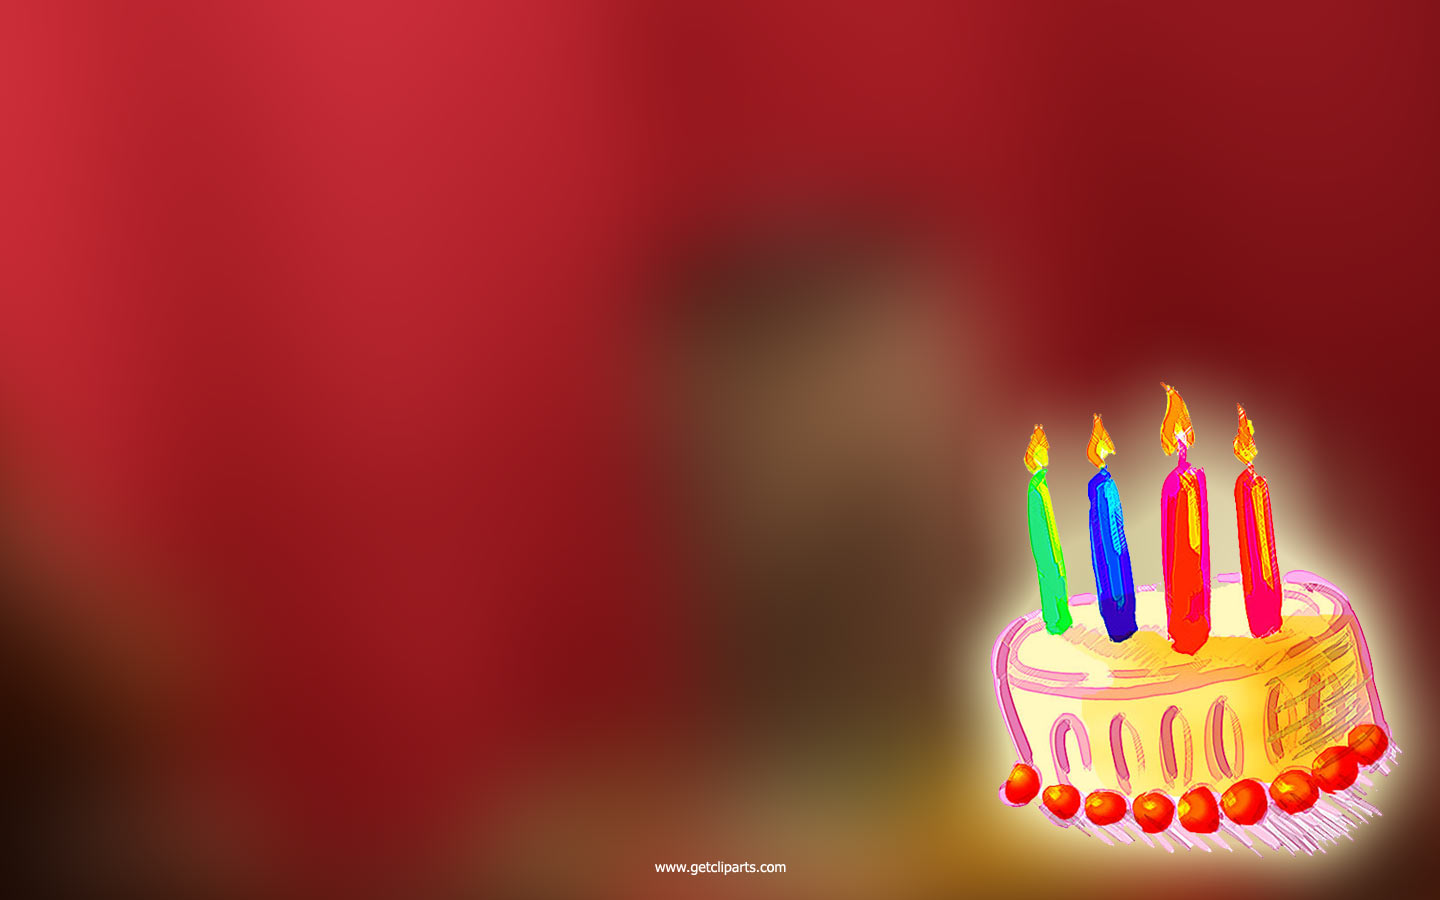 birthday wallpaper hd ; happy-birthday-image-dekstop-hd-wallpaper